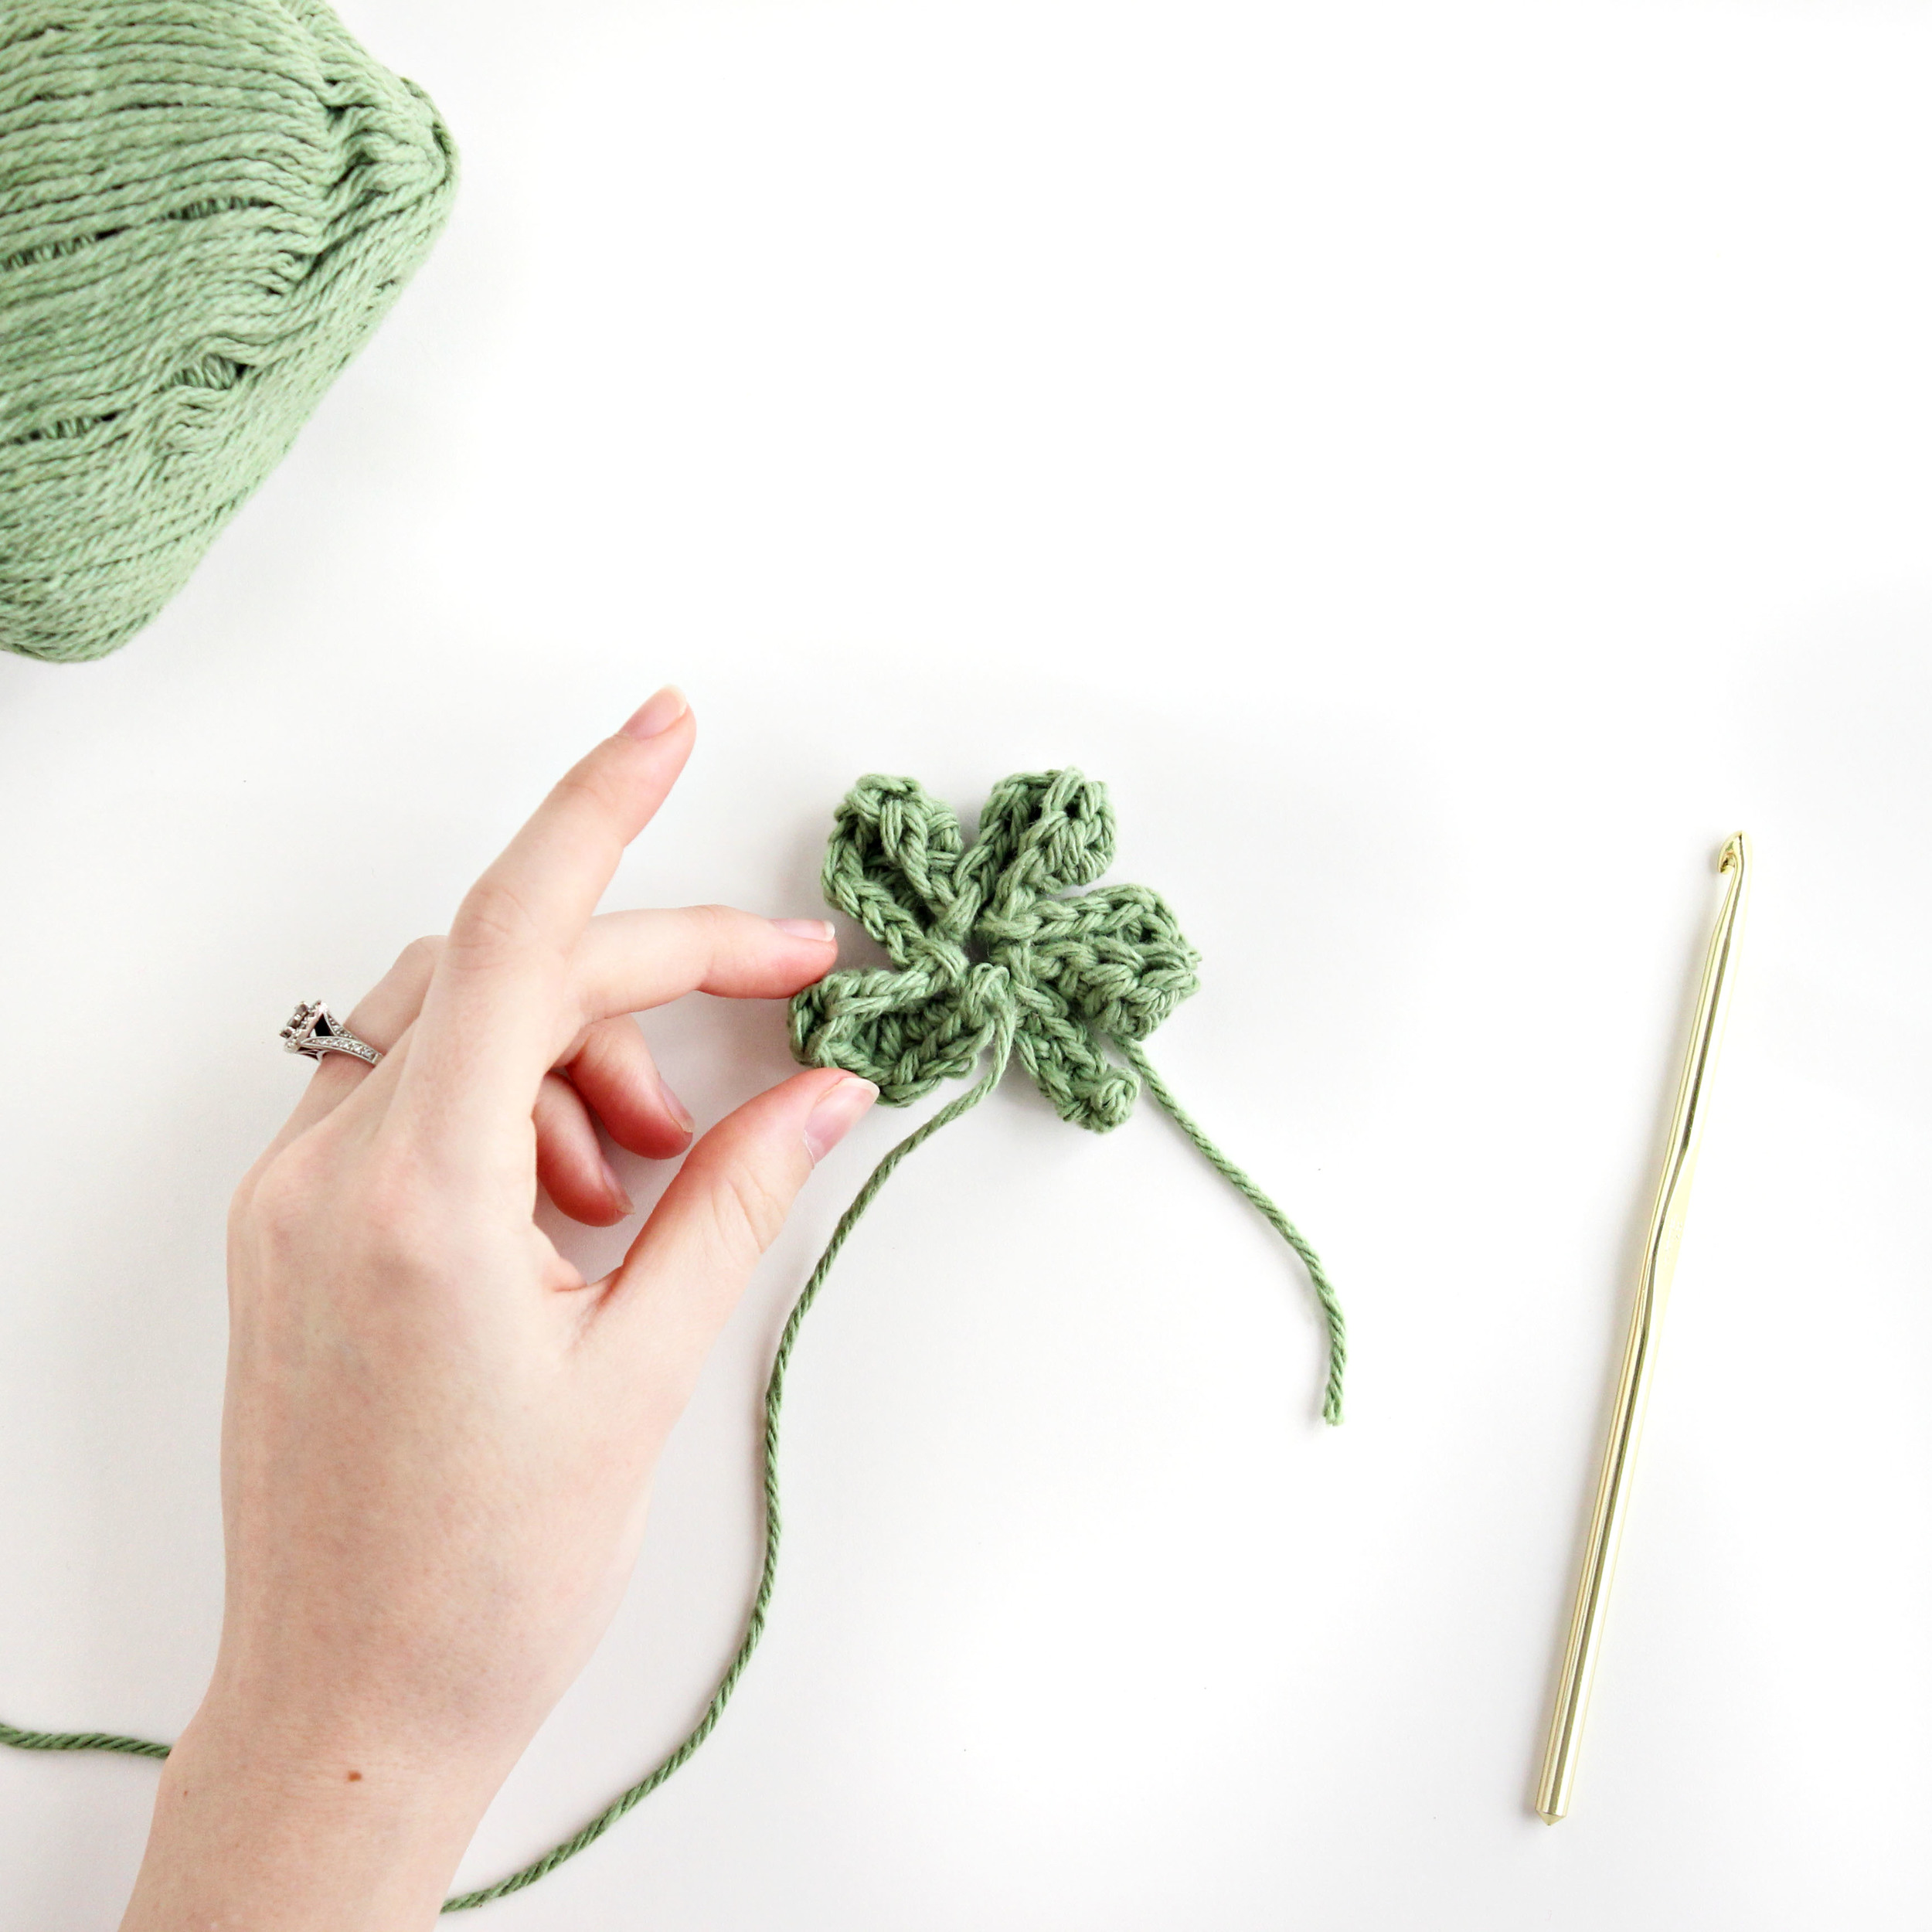 four leaf clover: crochet pattern & tutorial // via darlingbebrave.com